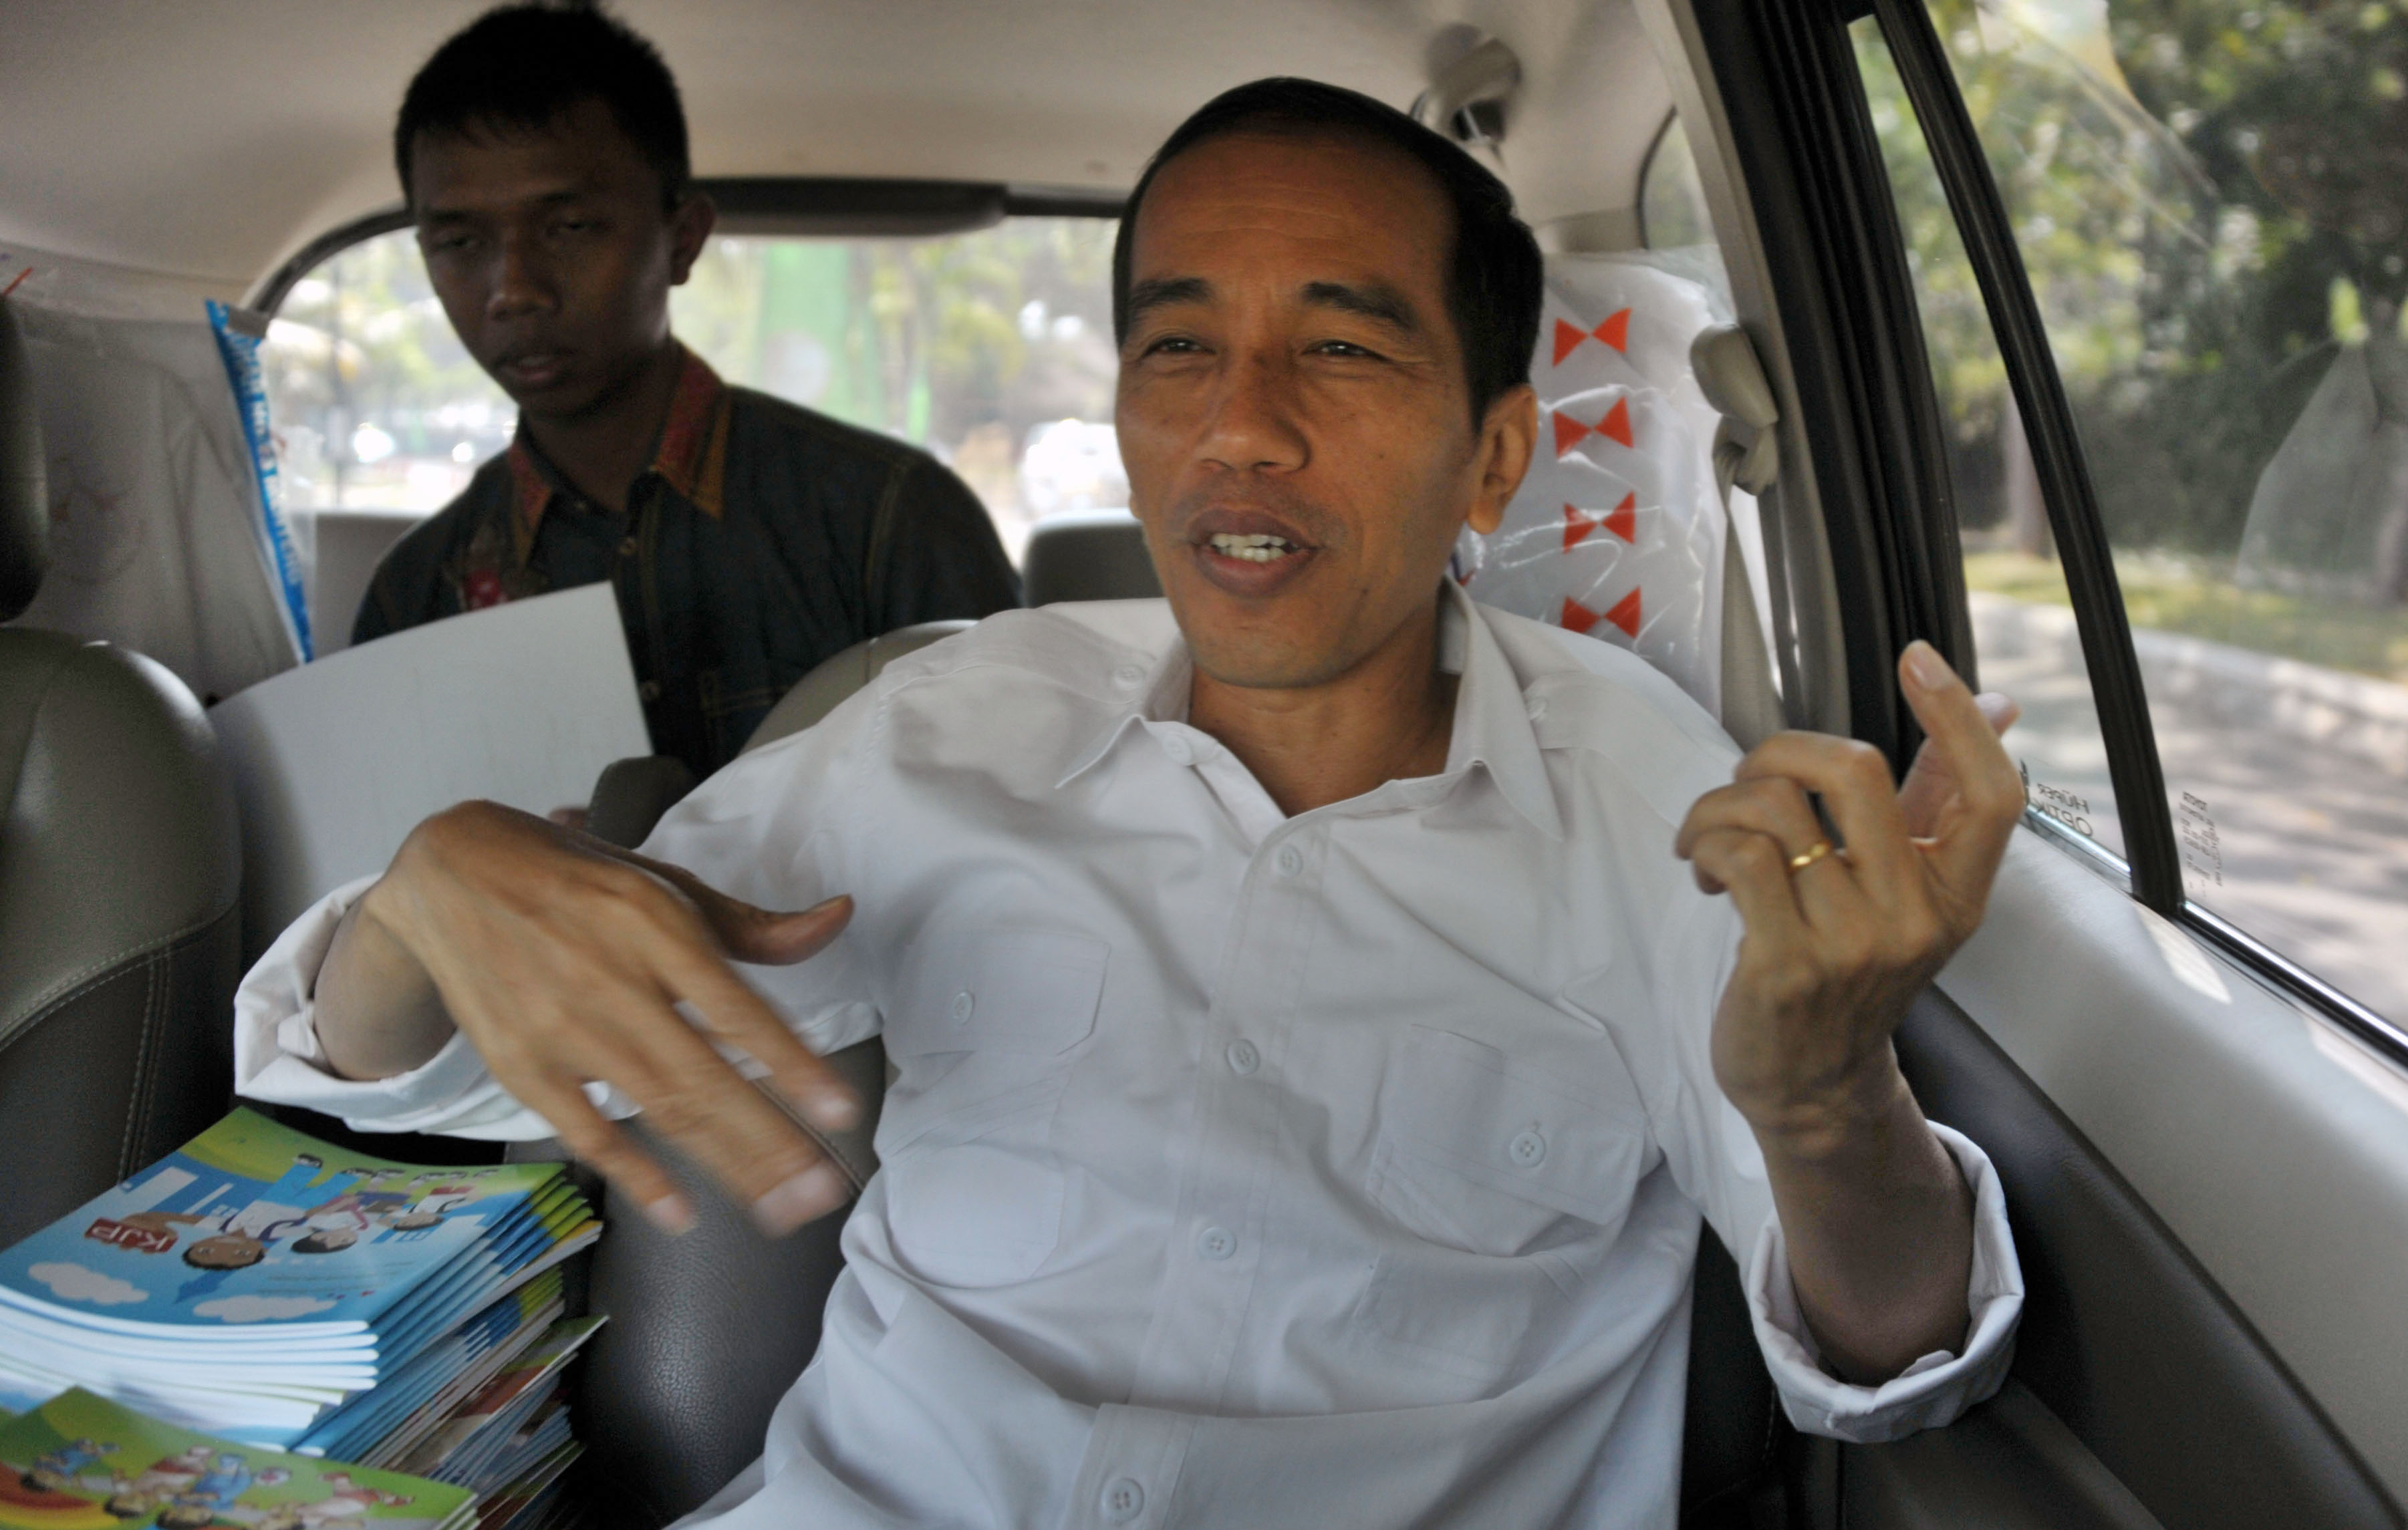 This picture taken on August 22, 2013, Jakarta governor Joko Widodo, a rock fan makes an air guitar gesture as he travels on a van on the way to make sight inspection in Jakarta city.